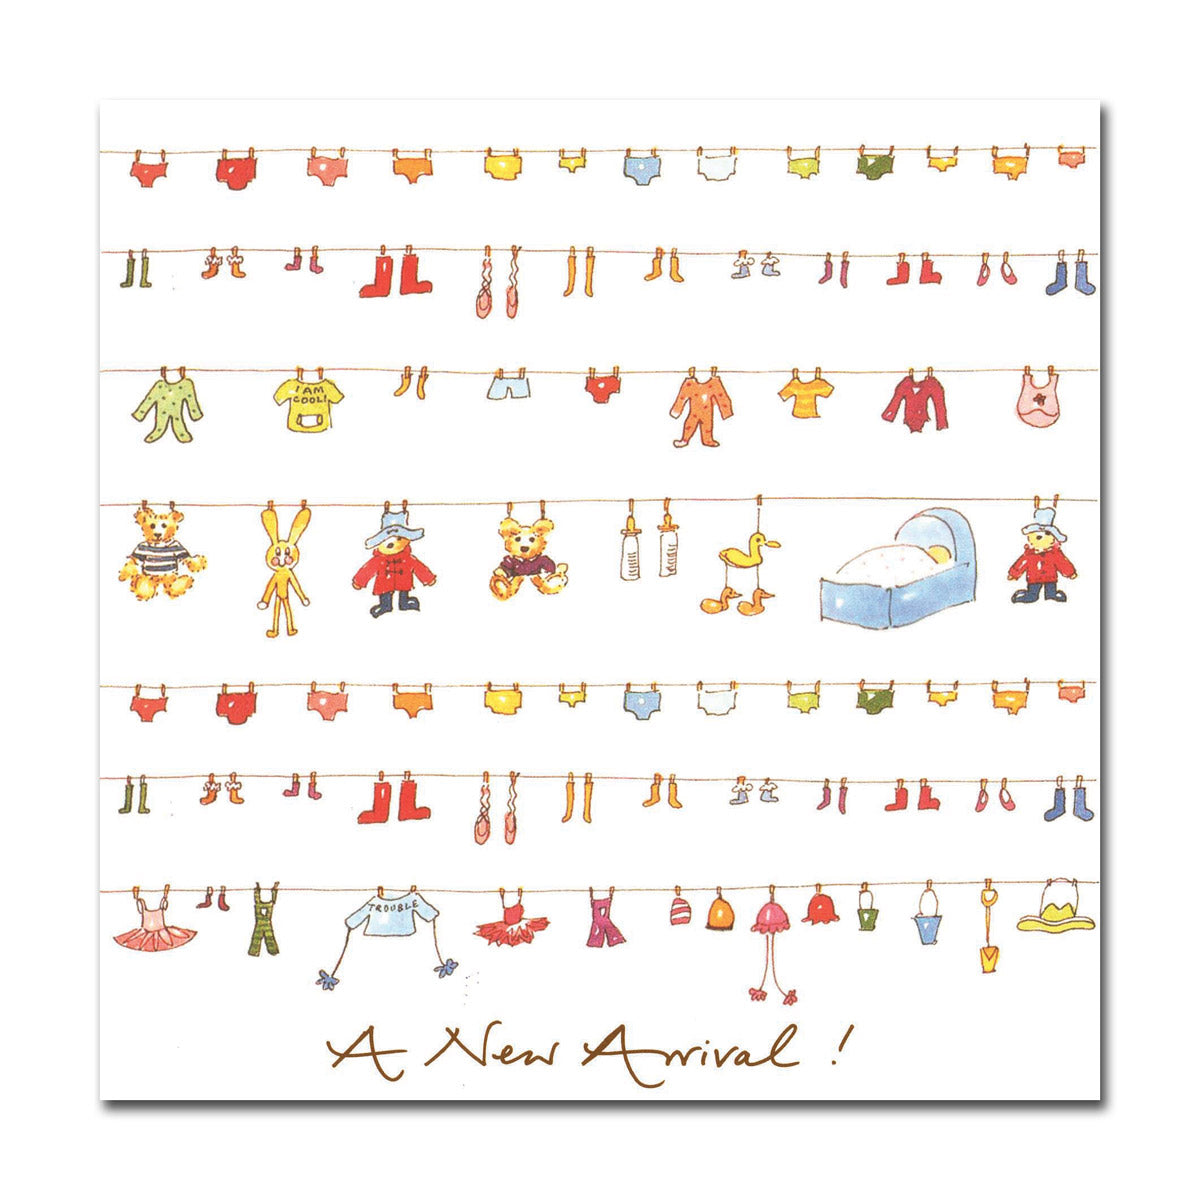 A New Arrival! Greeting Card